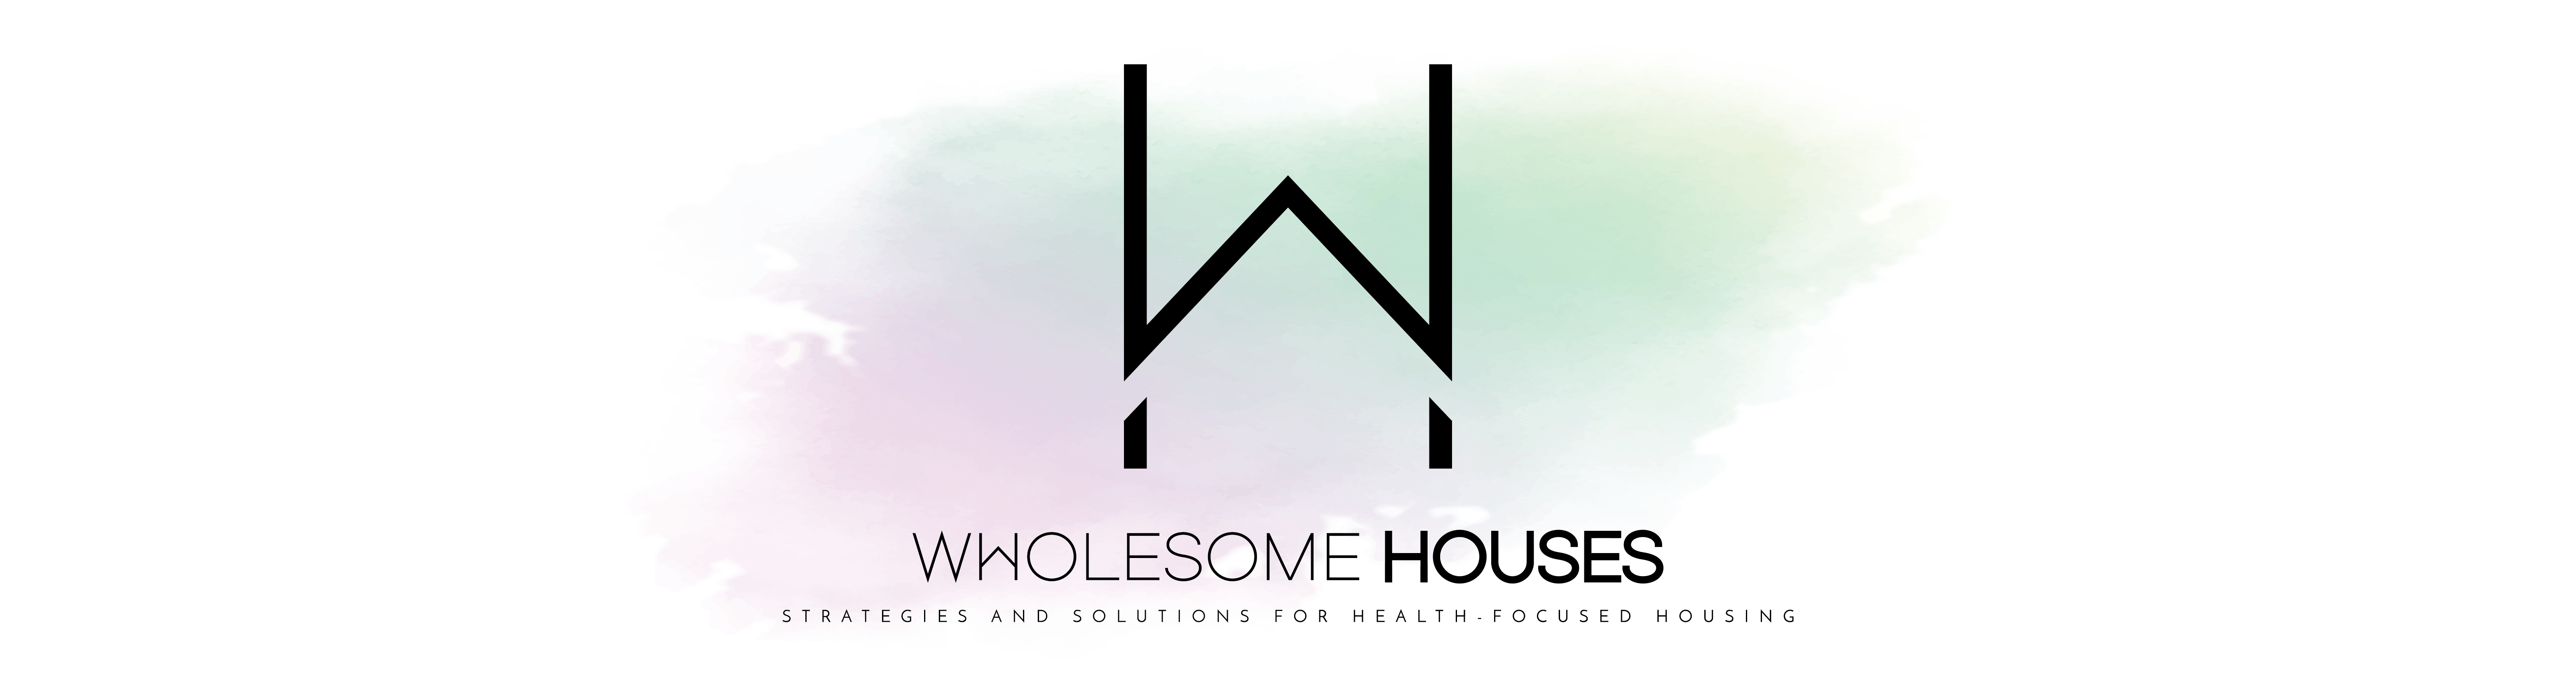 Wholesome Houses - Raising the Standards of Health in the Built Environment